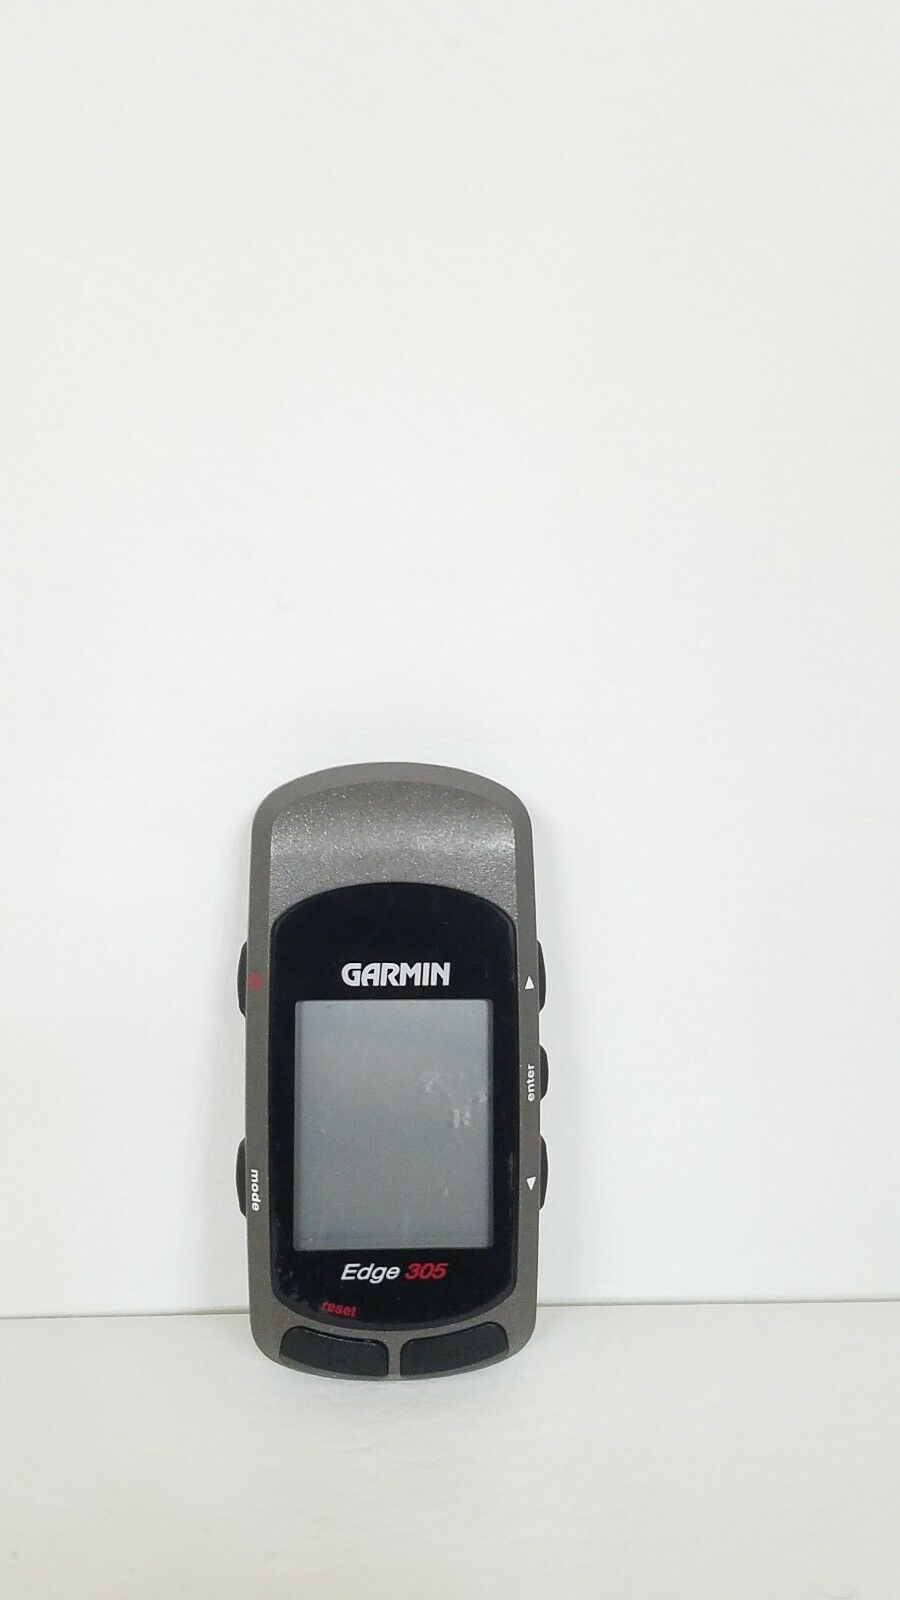 Garmin Edge  305 Gps-enabled Cycle Computer Unit Only  100% brand new with original quality